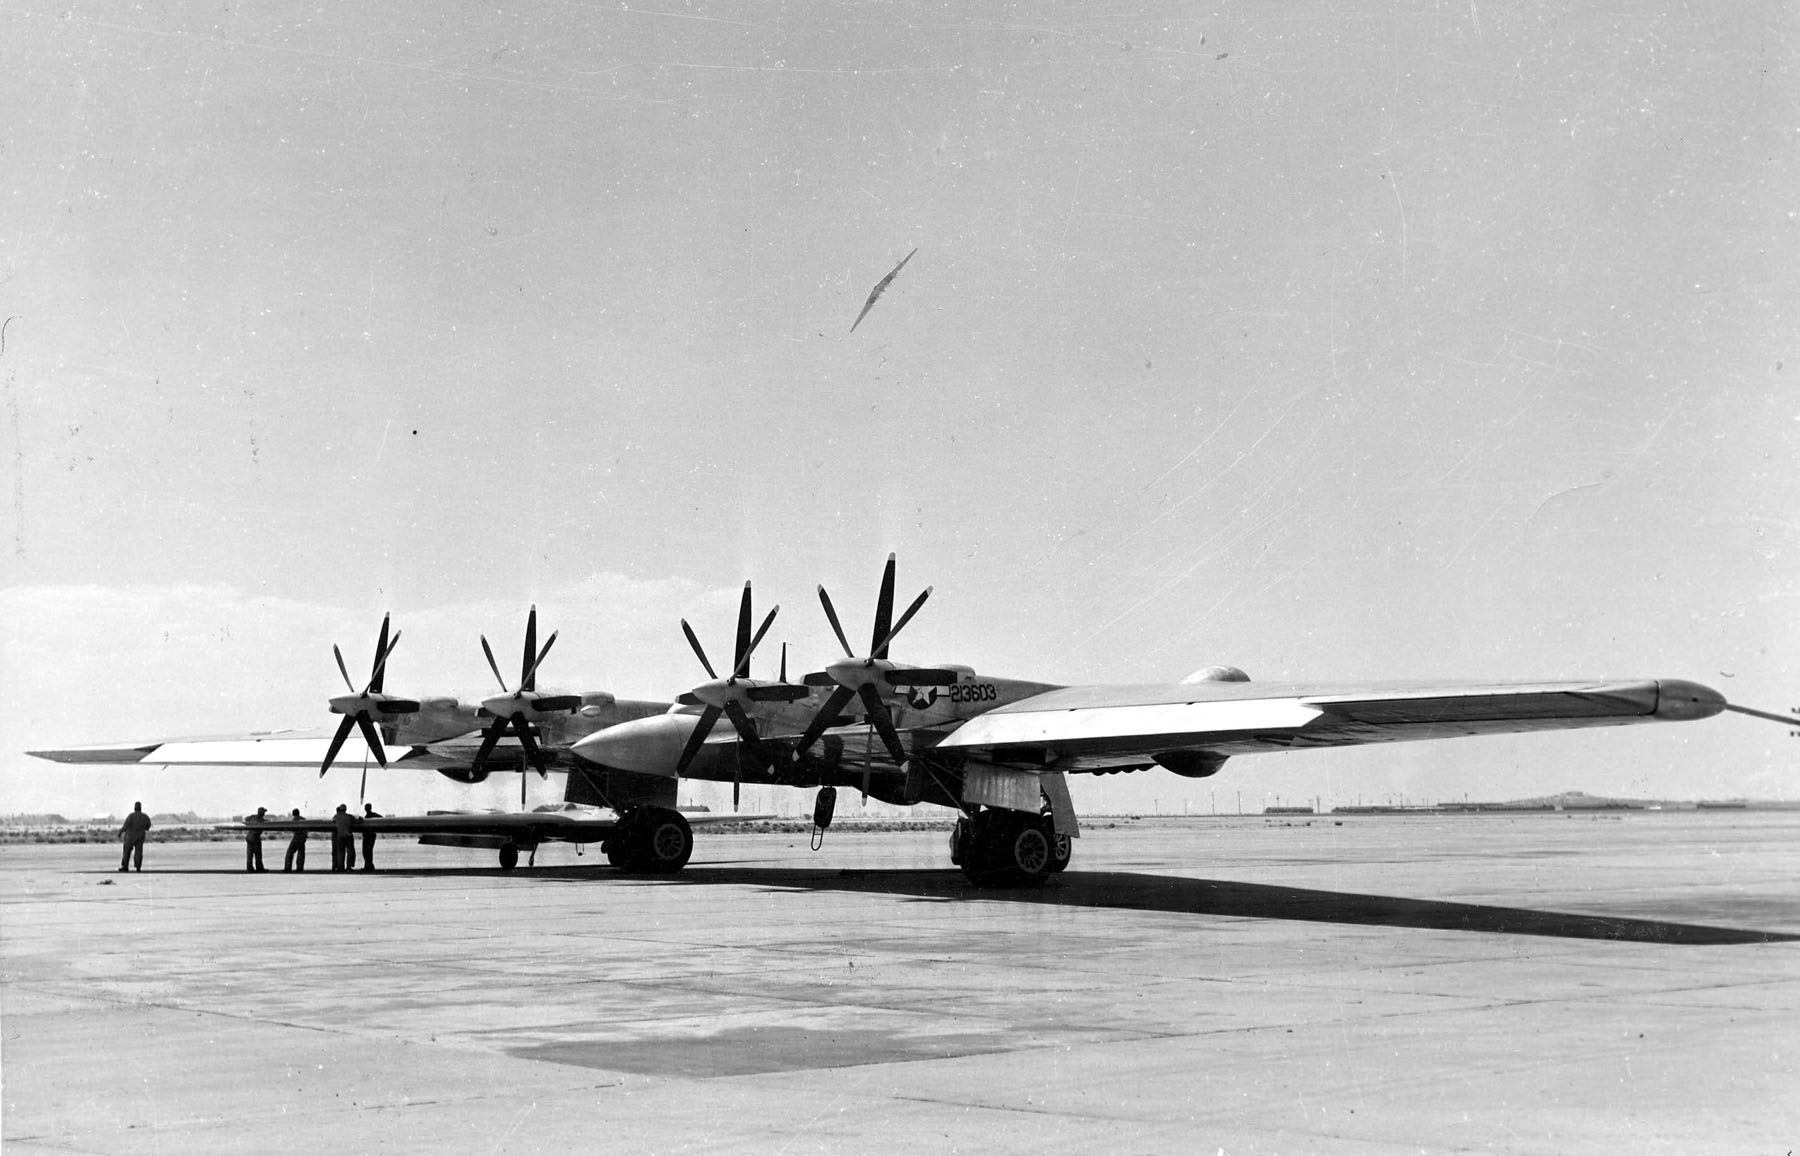 Contra-rotating propellers - Wikipedia